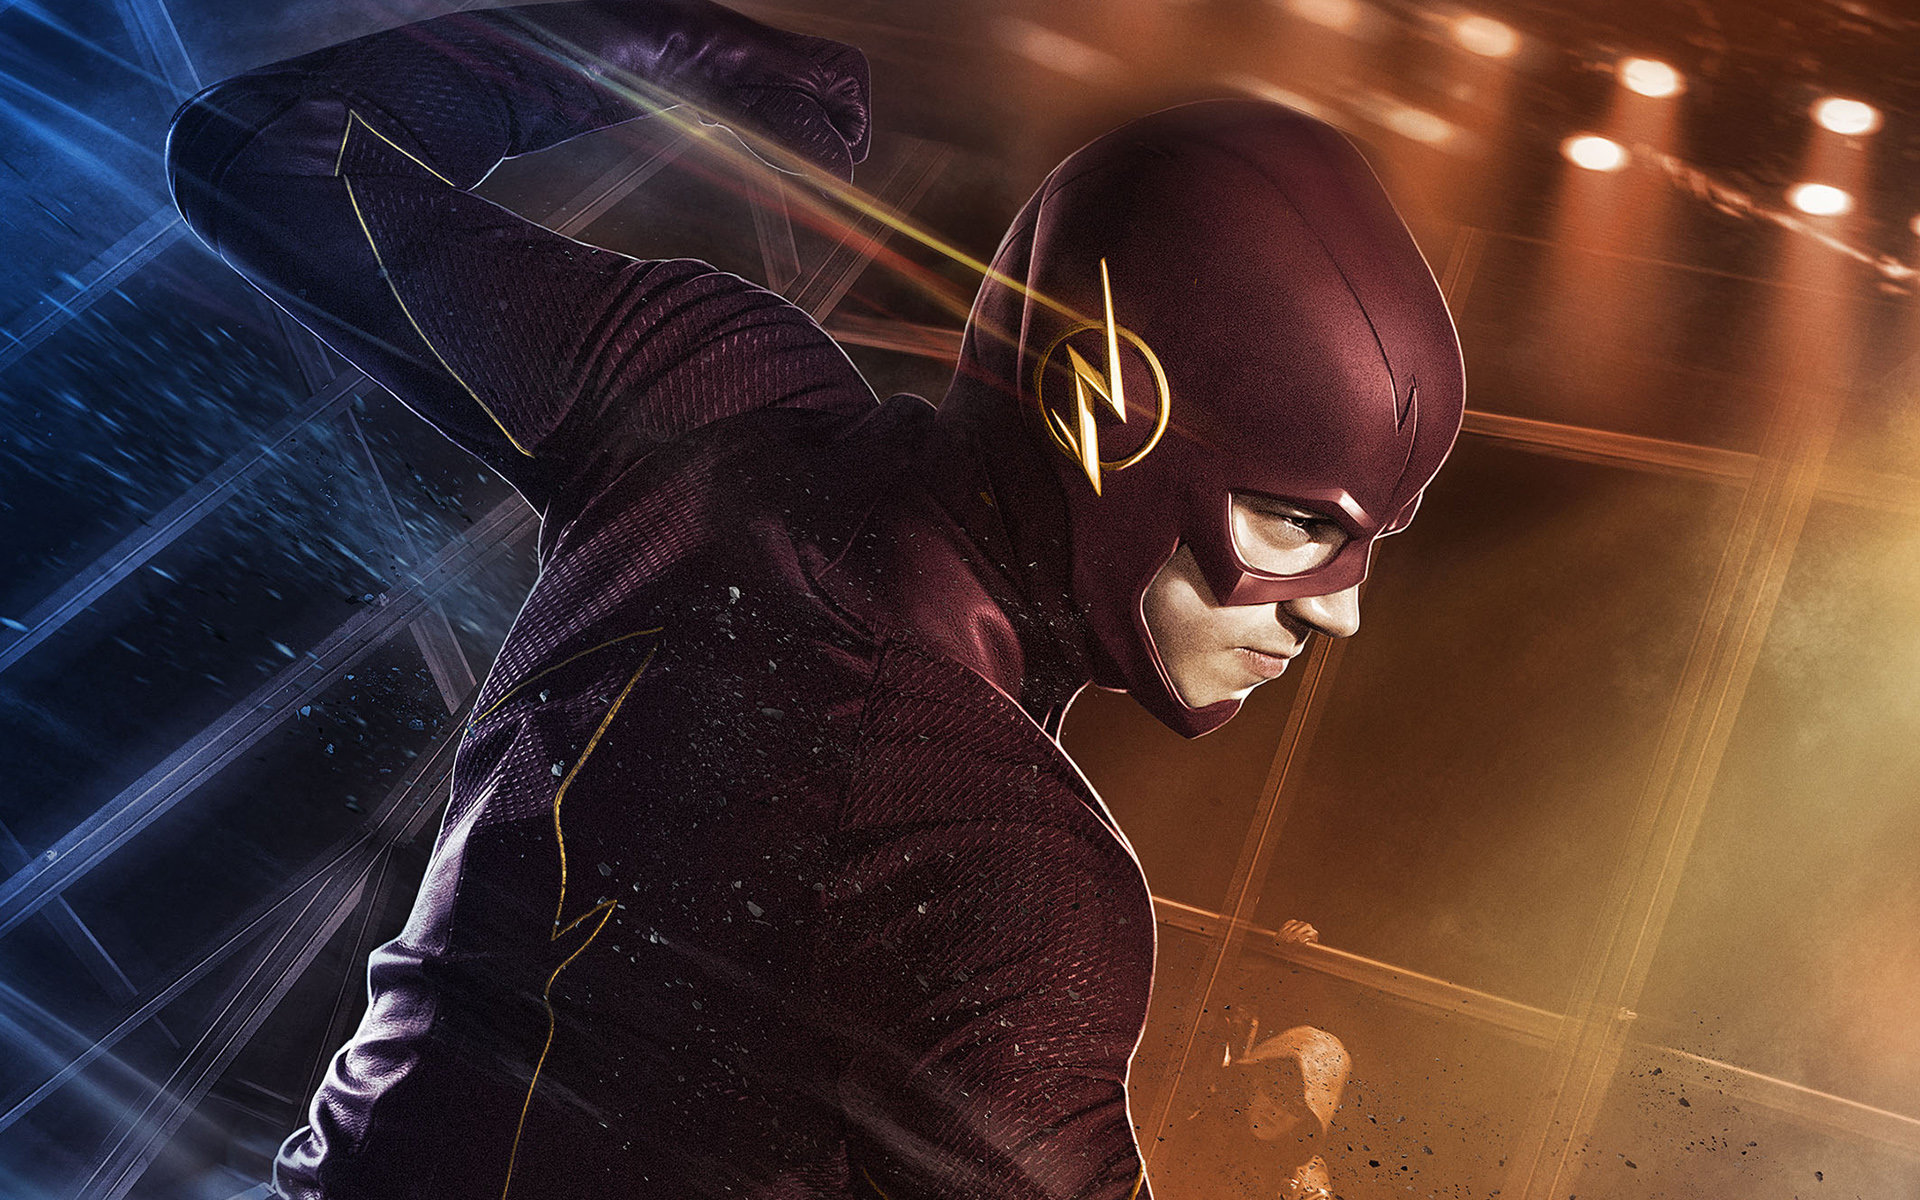 Best The Flash (2014) background ID:28712 for High Resolution hd 1920x1200 computer